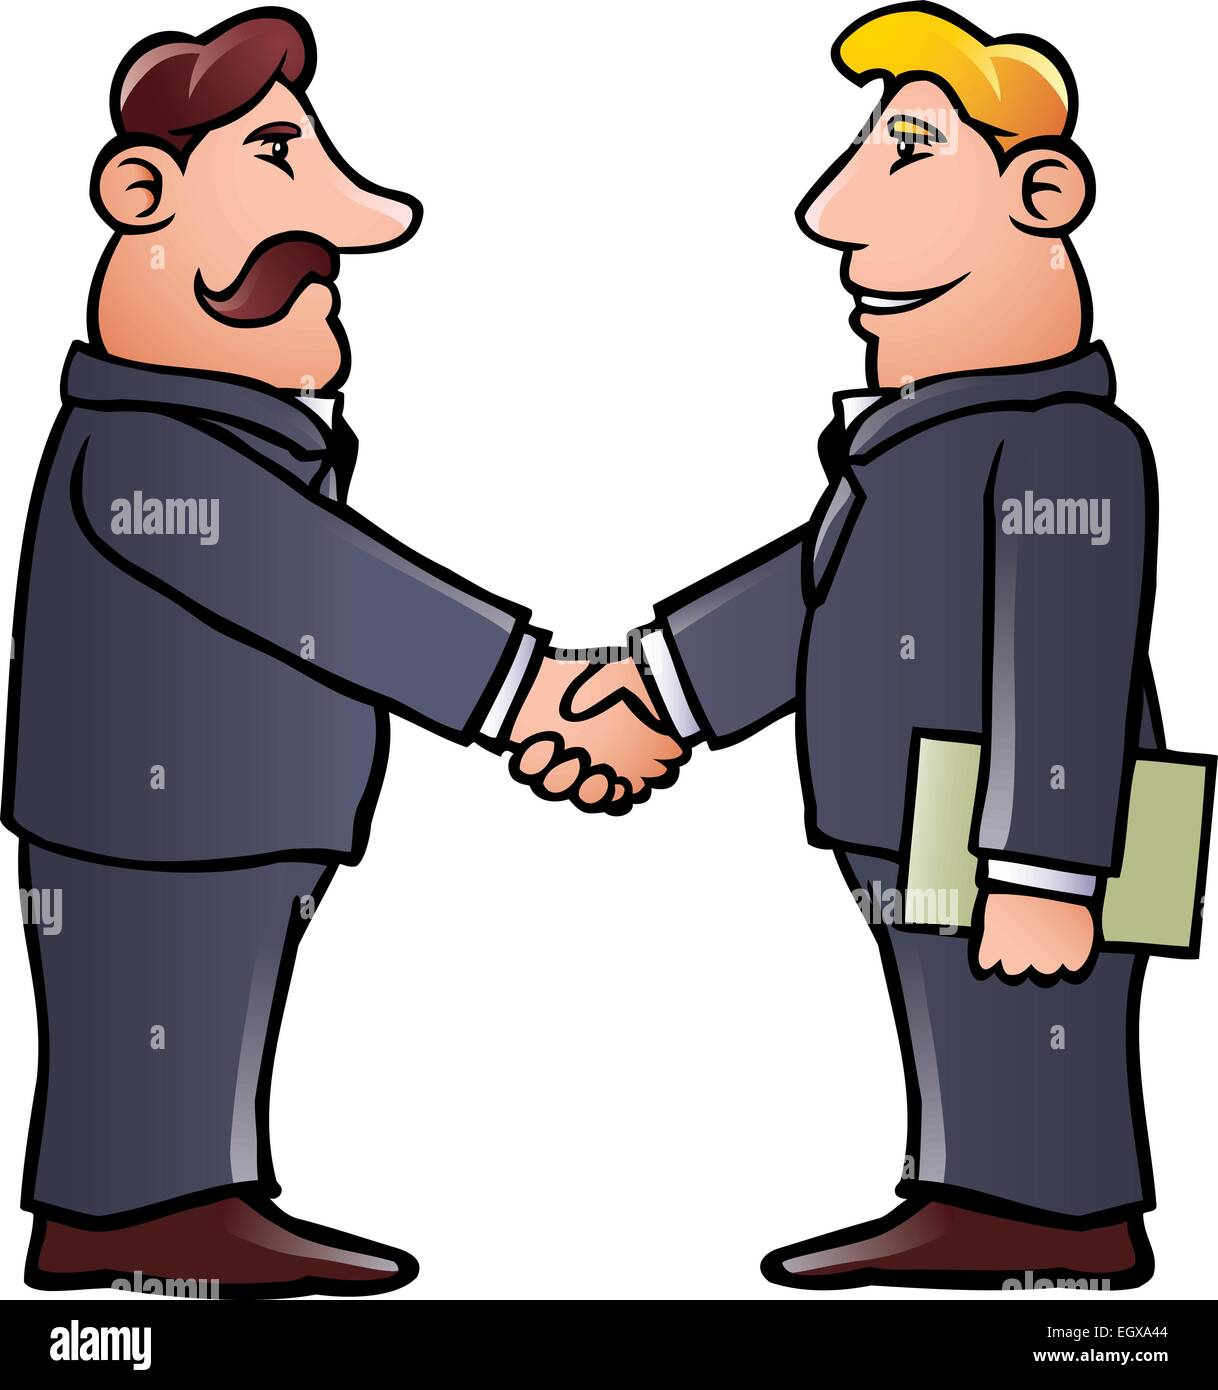 cartoon illustration of two business men shaking hands Talking Clip Art People Talking to Each Other